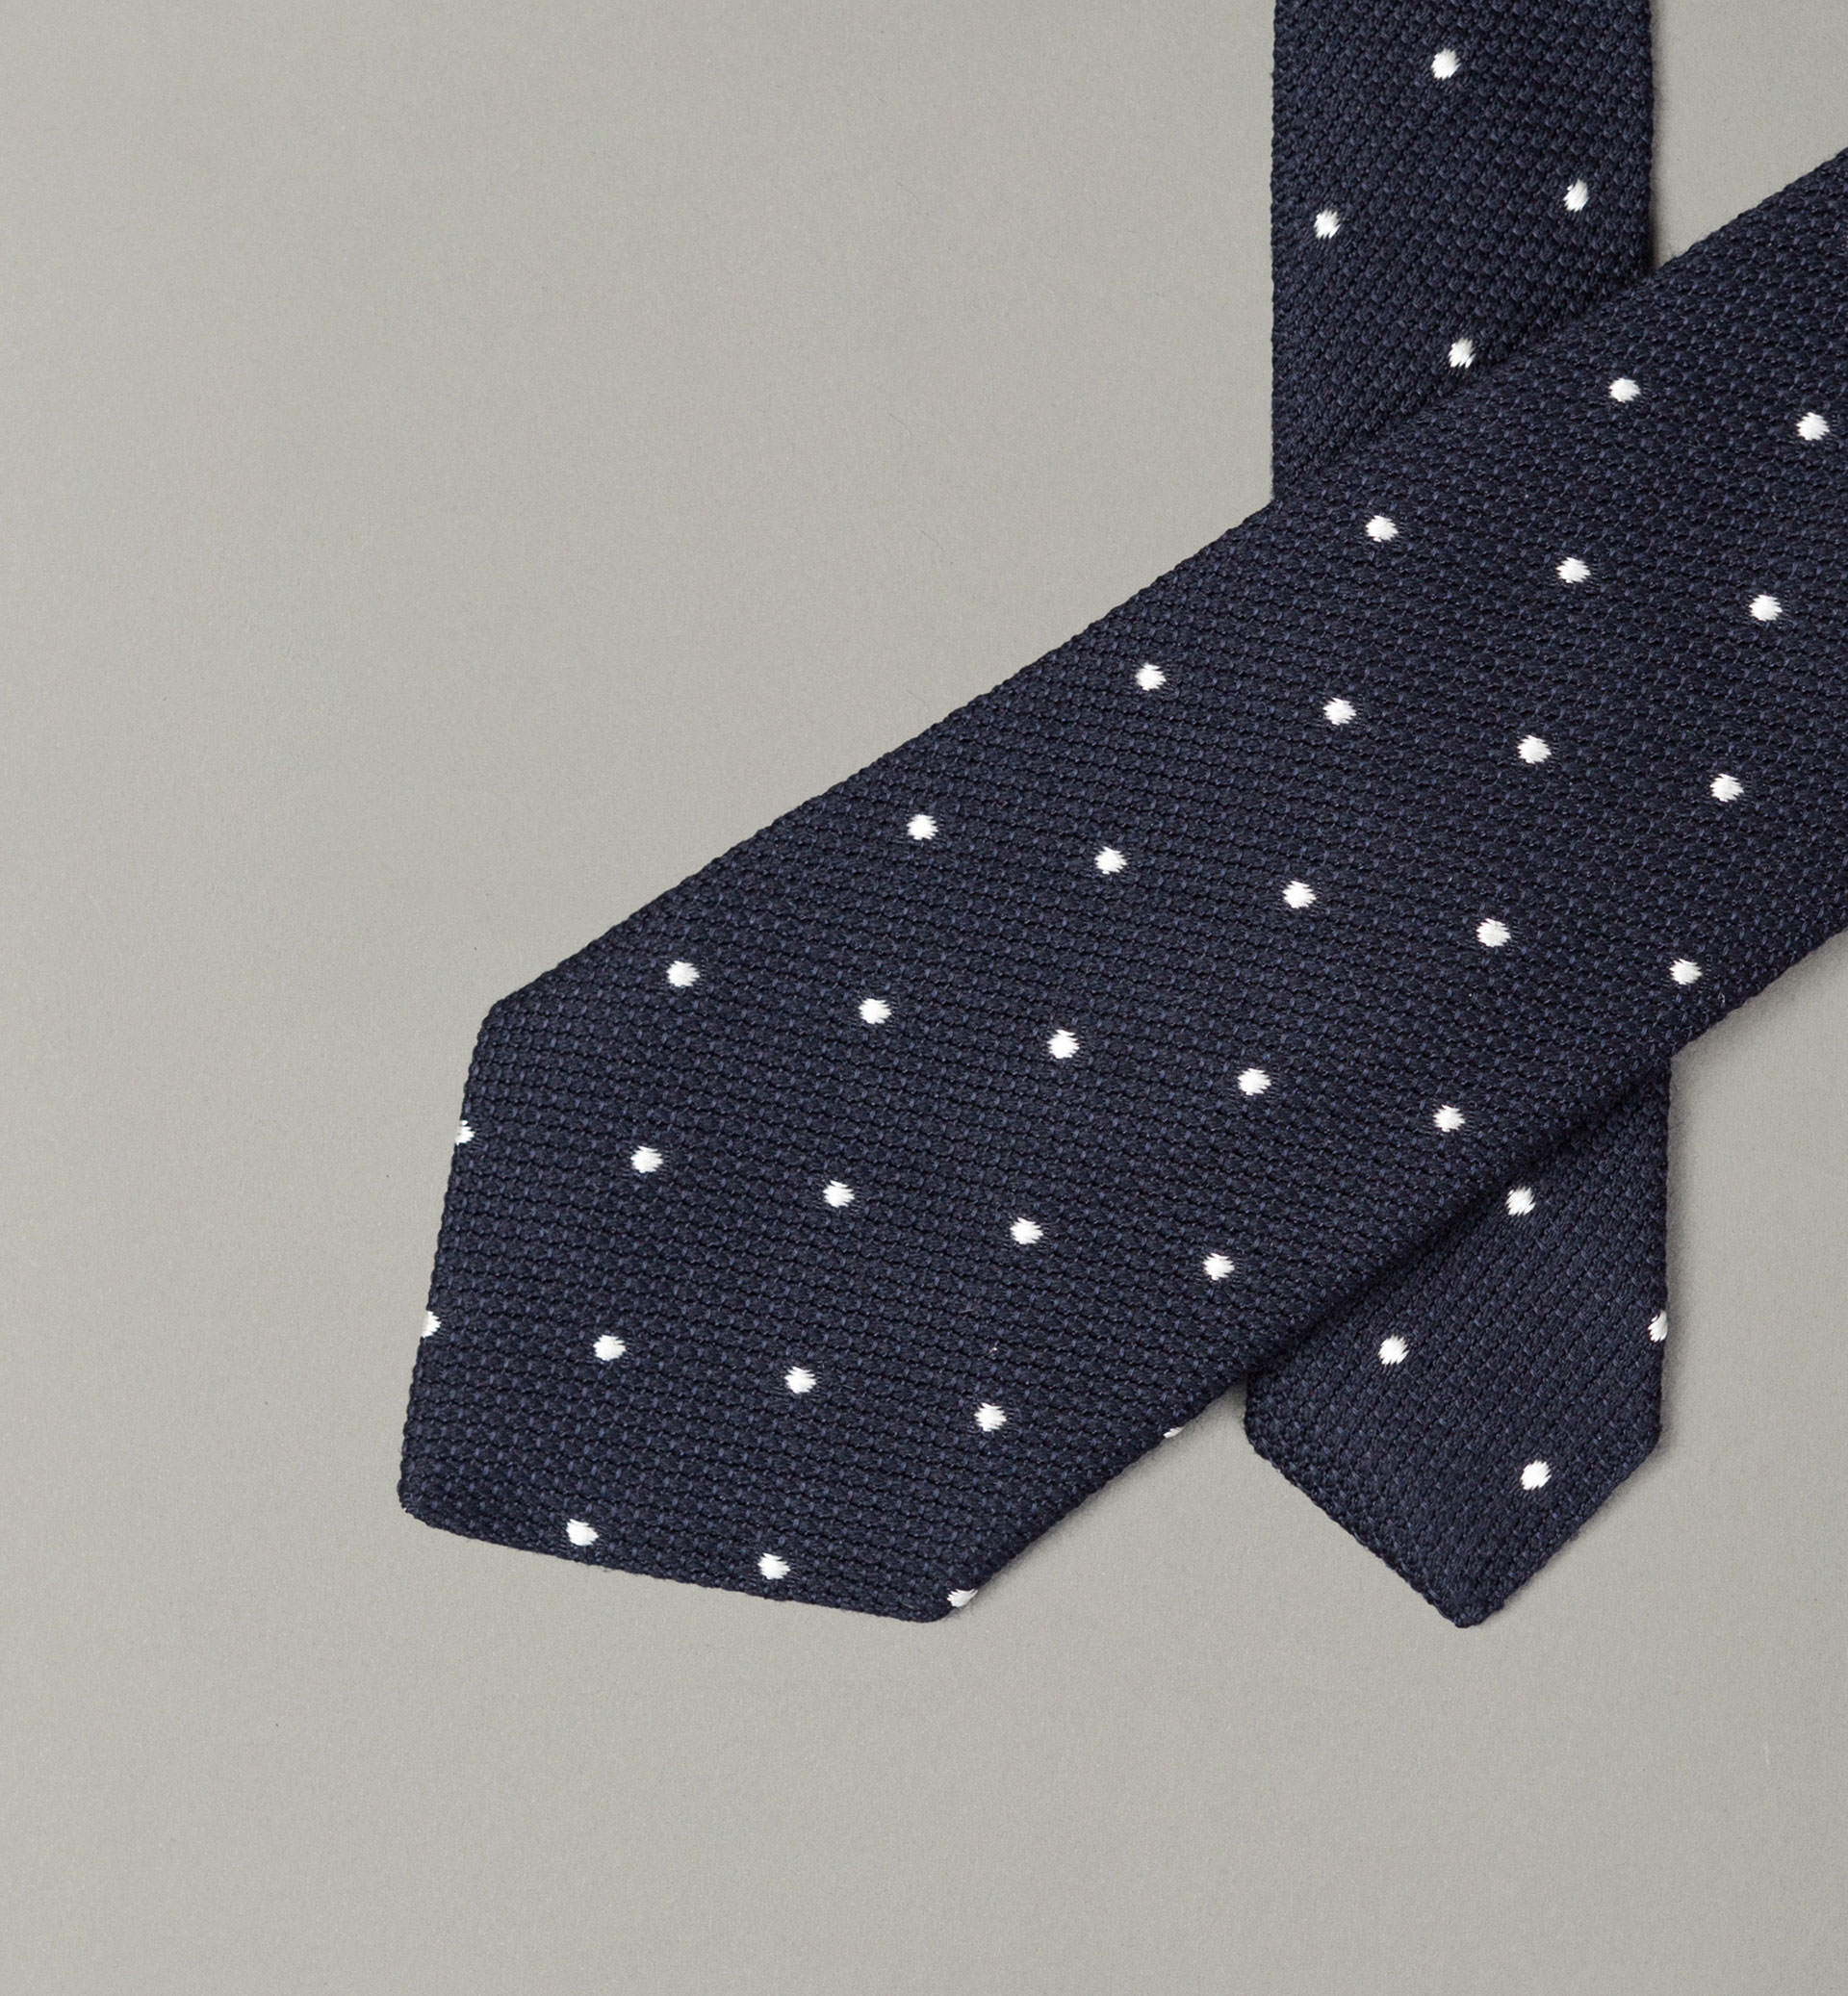 PERSONAL TAILORING NAVY BLUE POLKA DOT TEXTURED WEAVE TIE